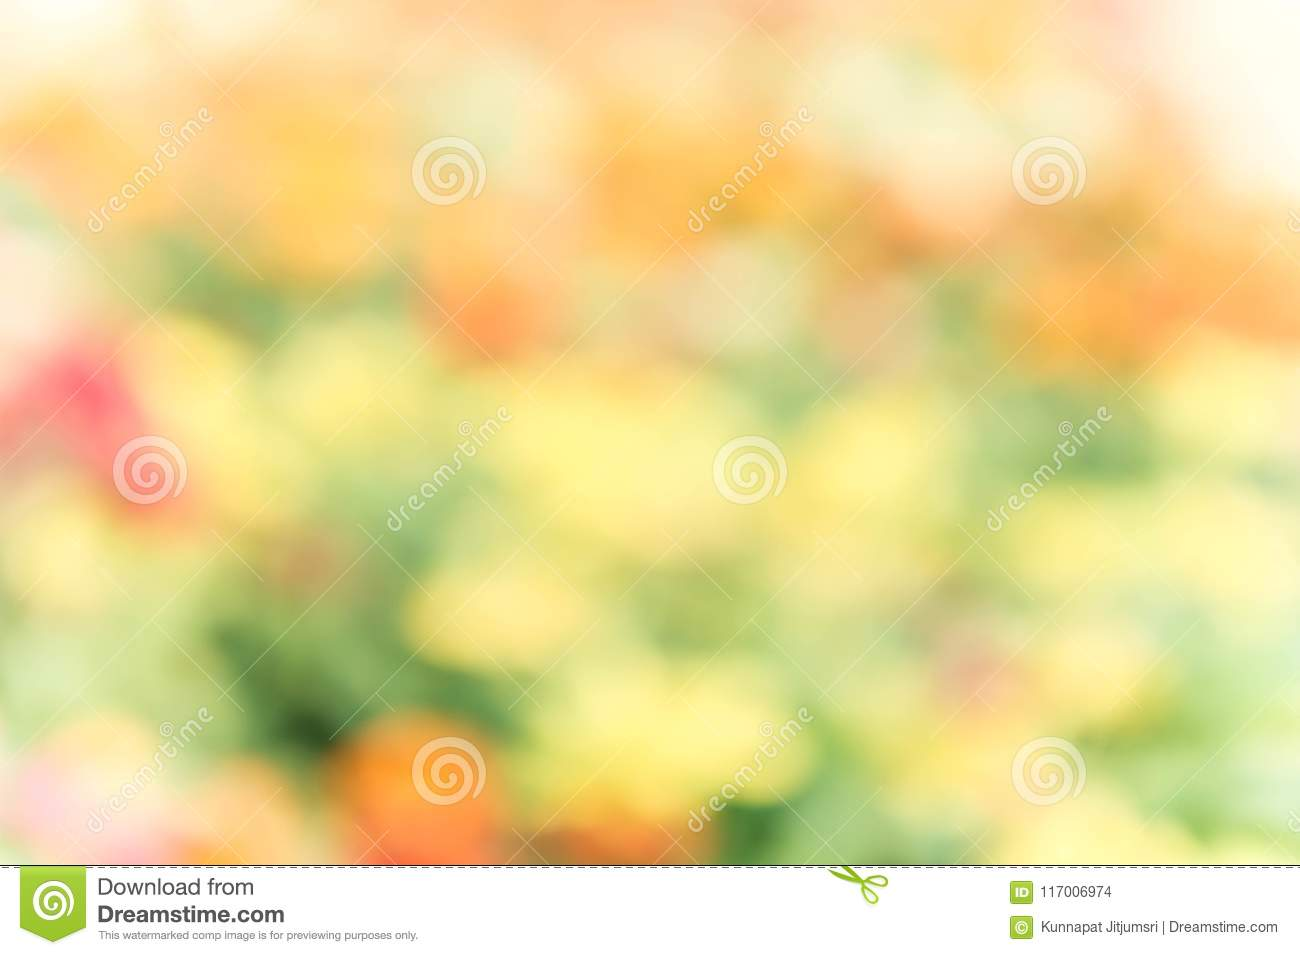 318 746 Nature Blur Background Photos Free Royalty Free Stock Photos From Dreamstime